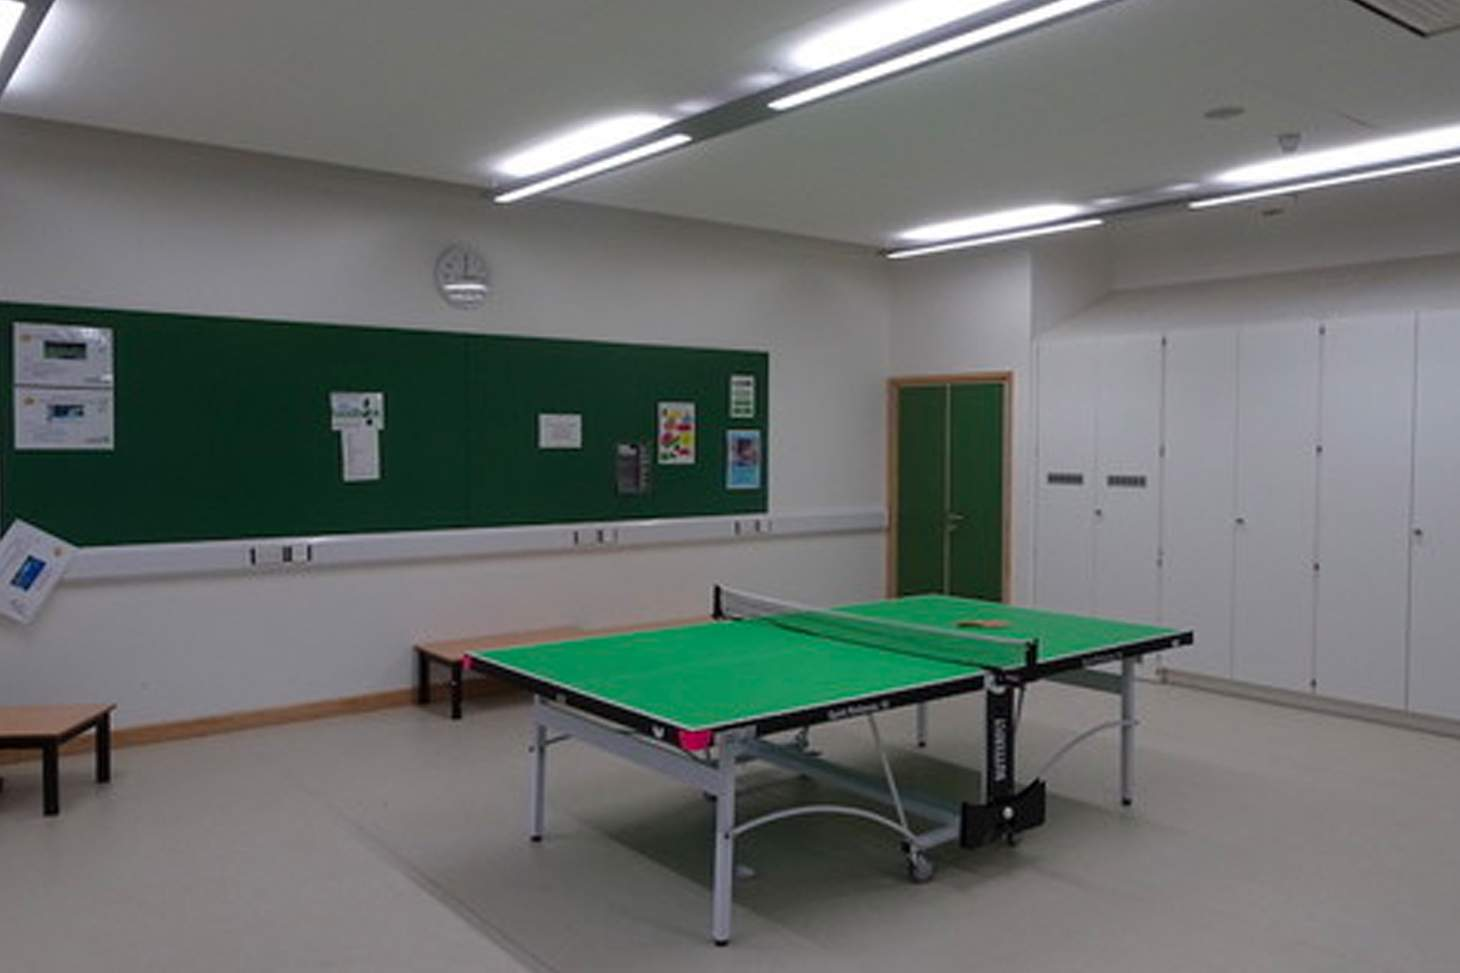 Orchardside School Table | Indoor table tennis table